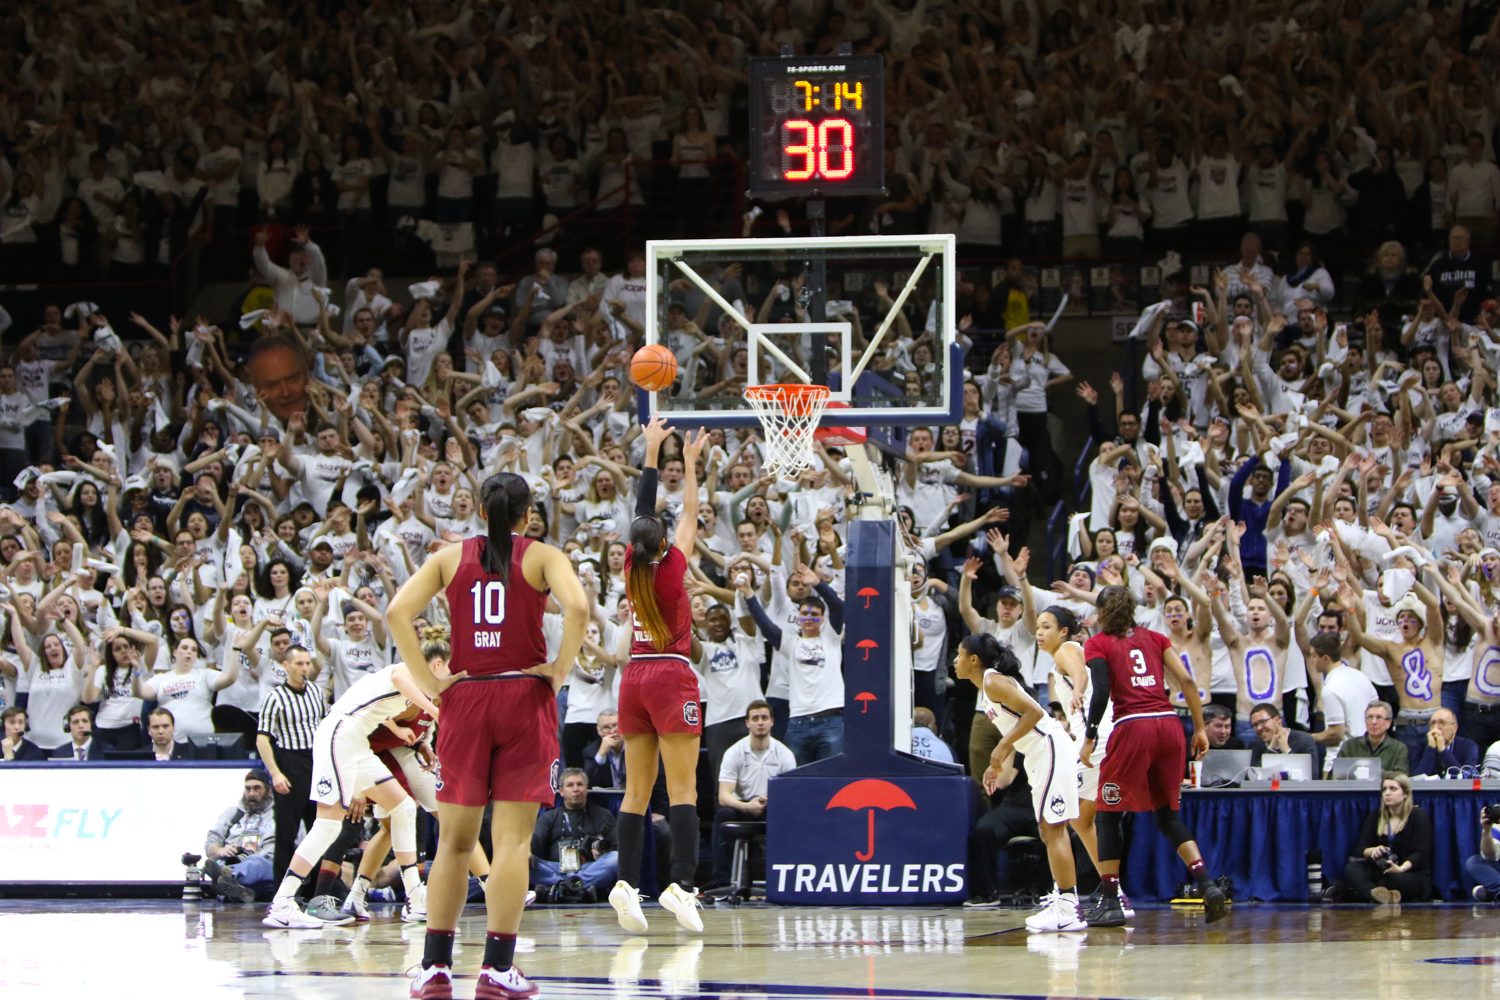 The student section attempts to distract South Carolina's A'ja Wilson while shooting a free throw. (Jackson Haigis/The Daily Campus)